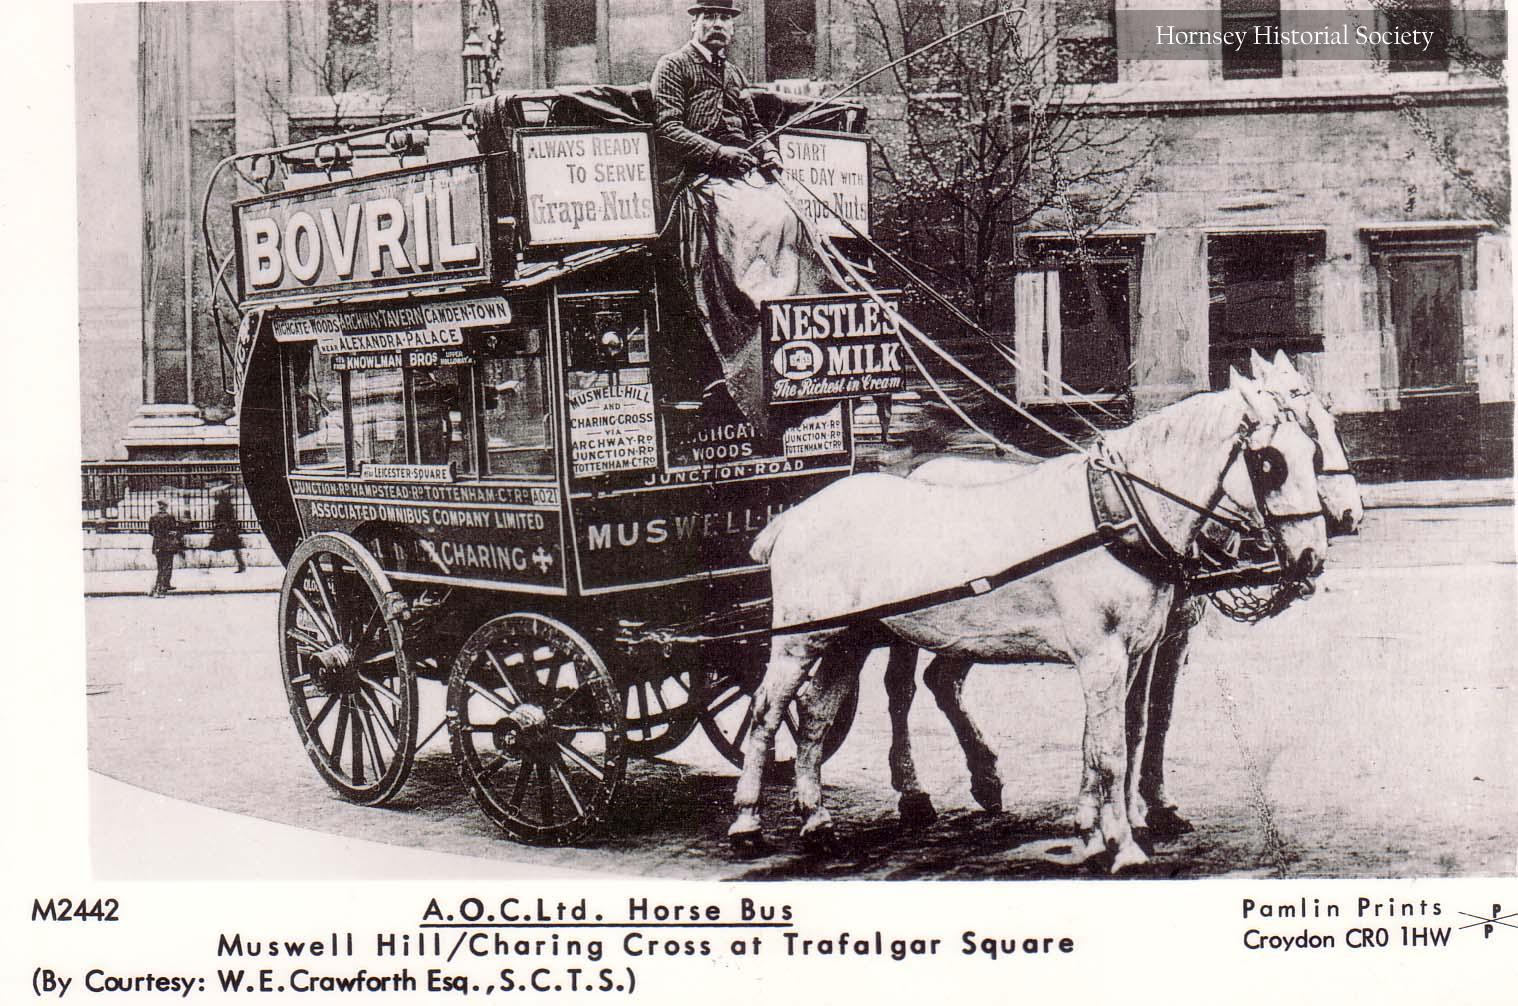 Horse Bus, Muswell Hill